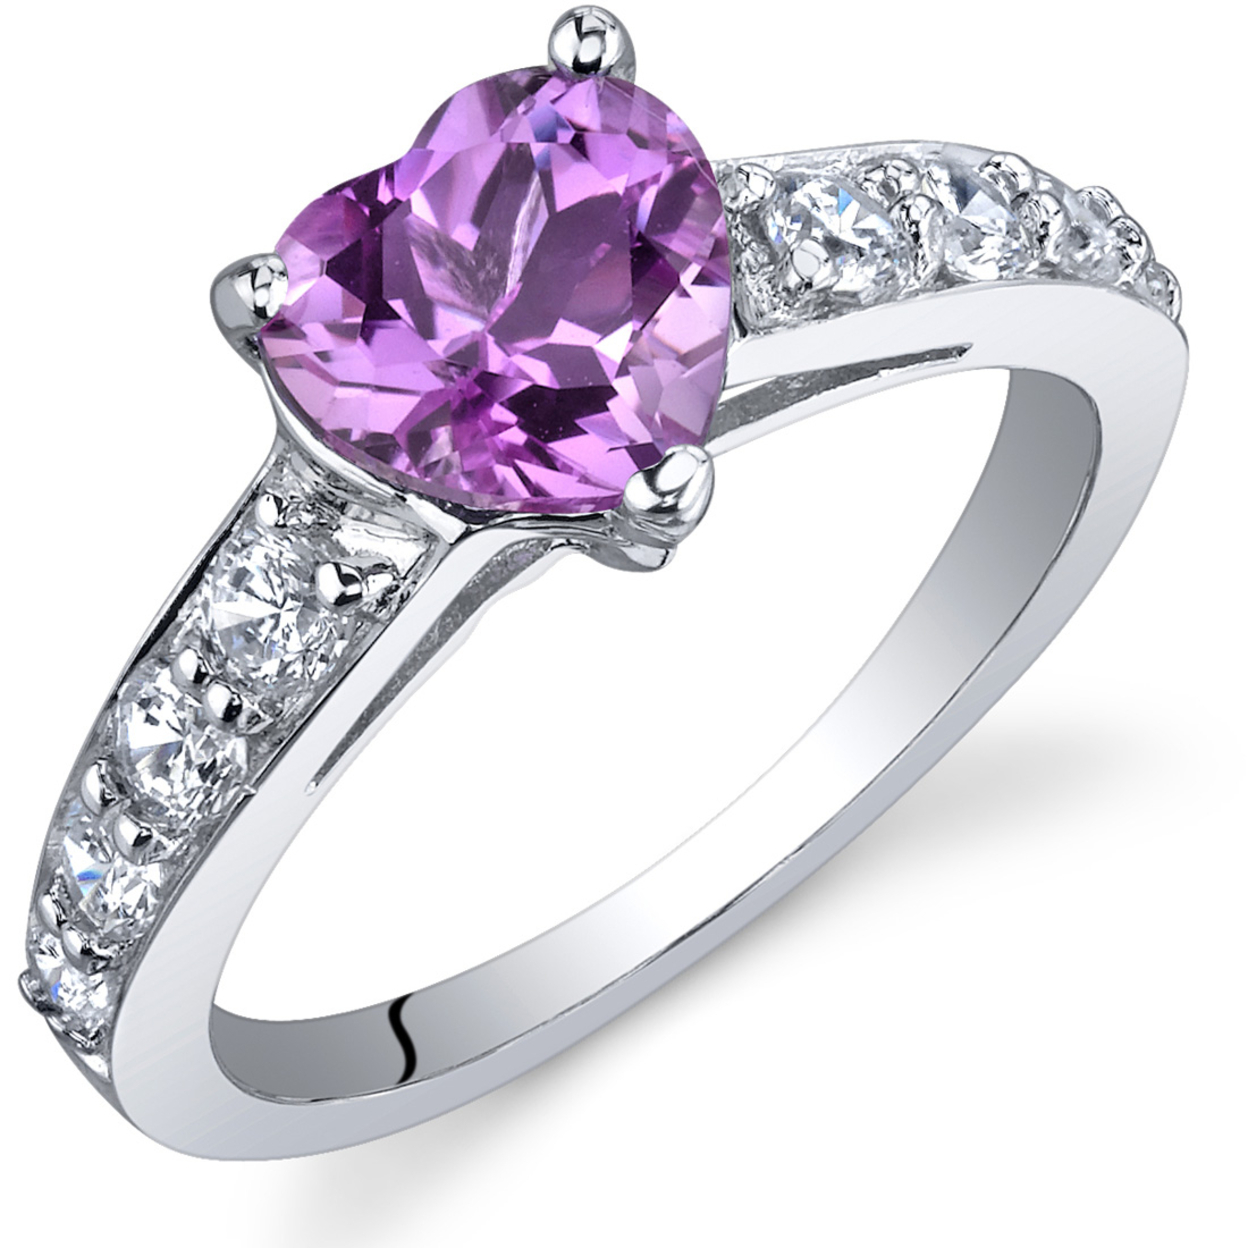 Oravo 1.50 Ct Created Pink Sapphire Ring In Rhodium-plated Sterling Silver, Sizes 5-9